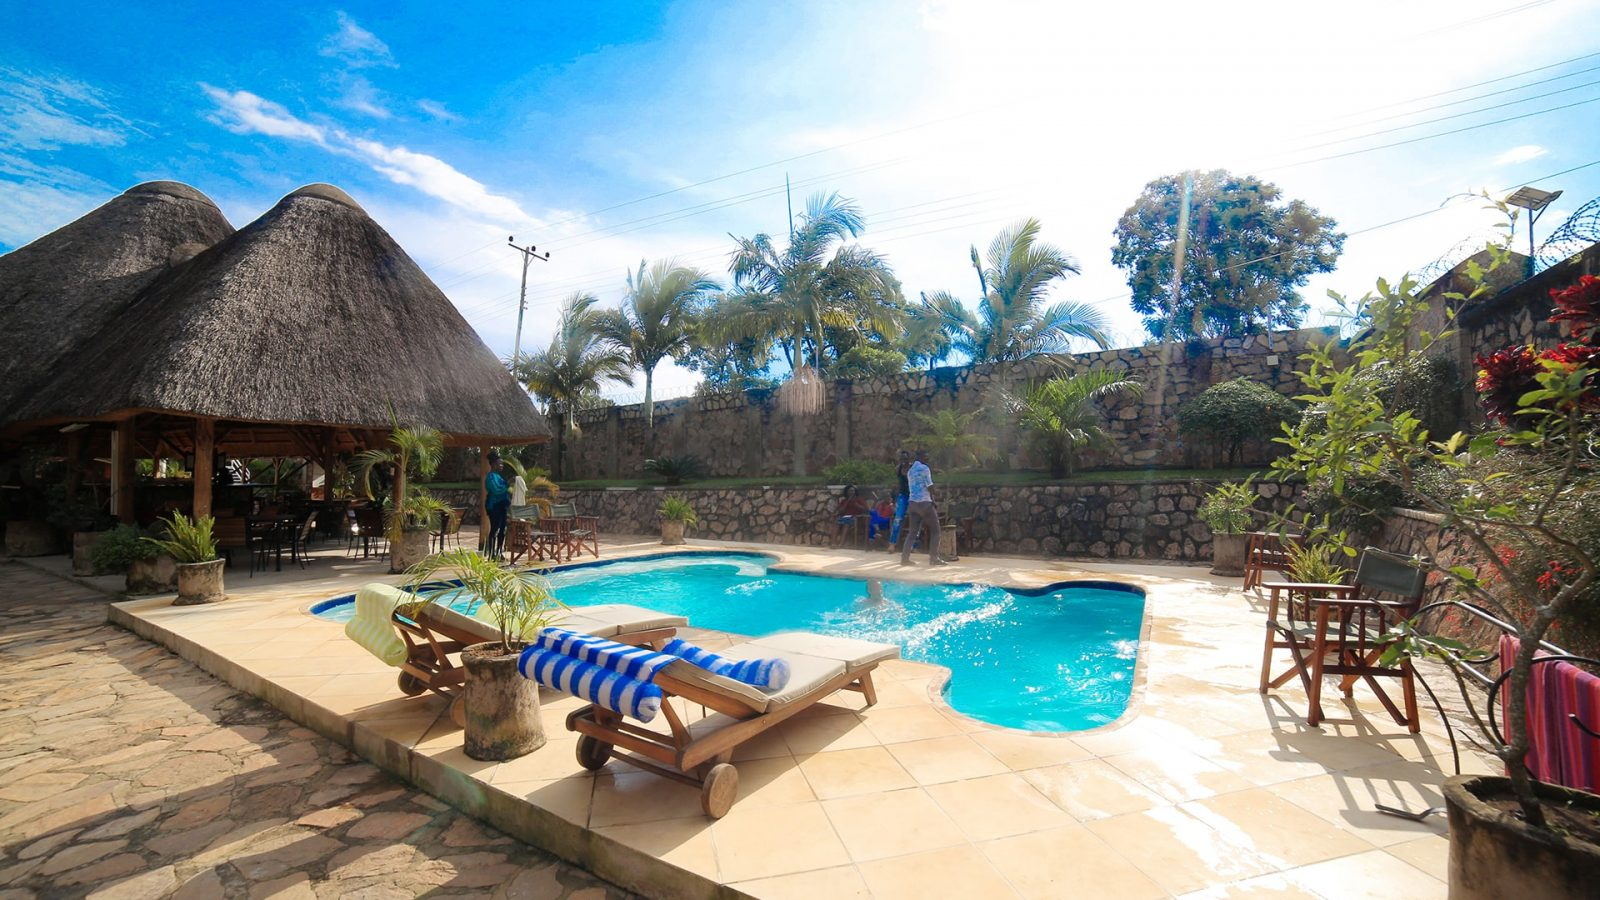 entebbe palm hotel pool area